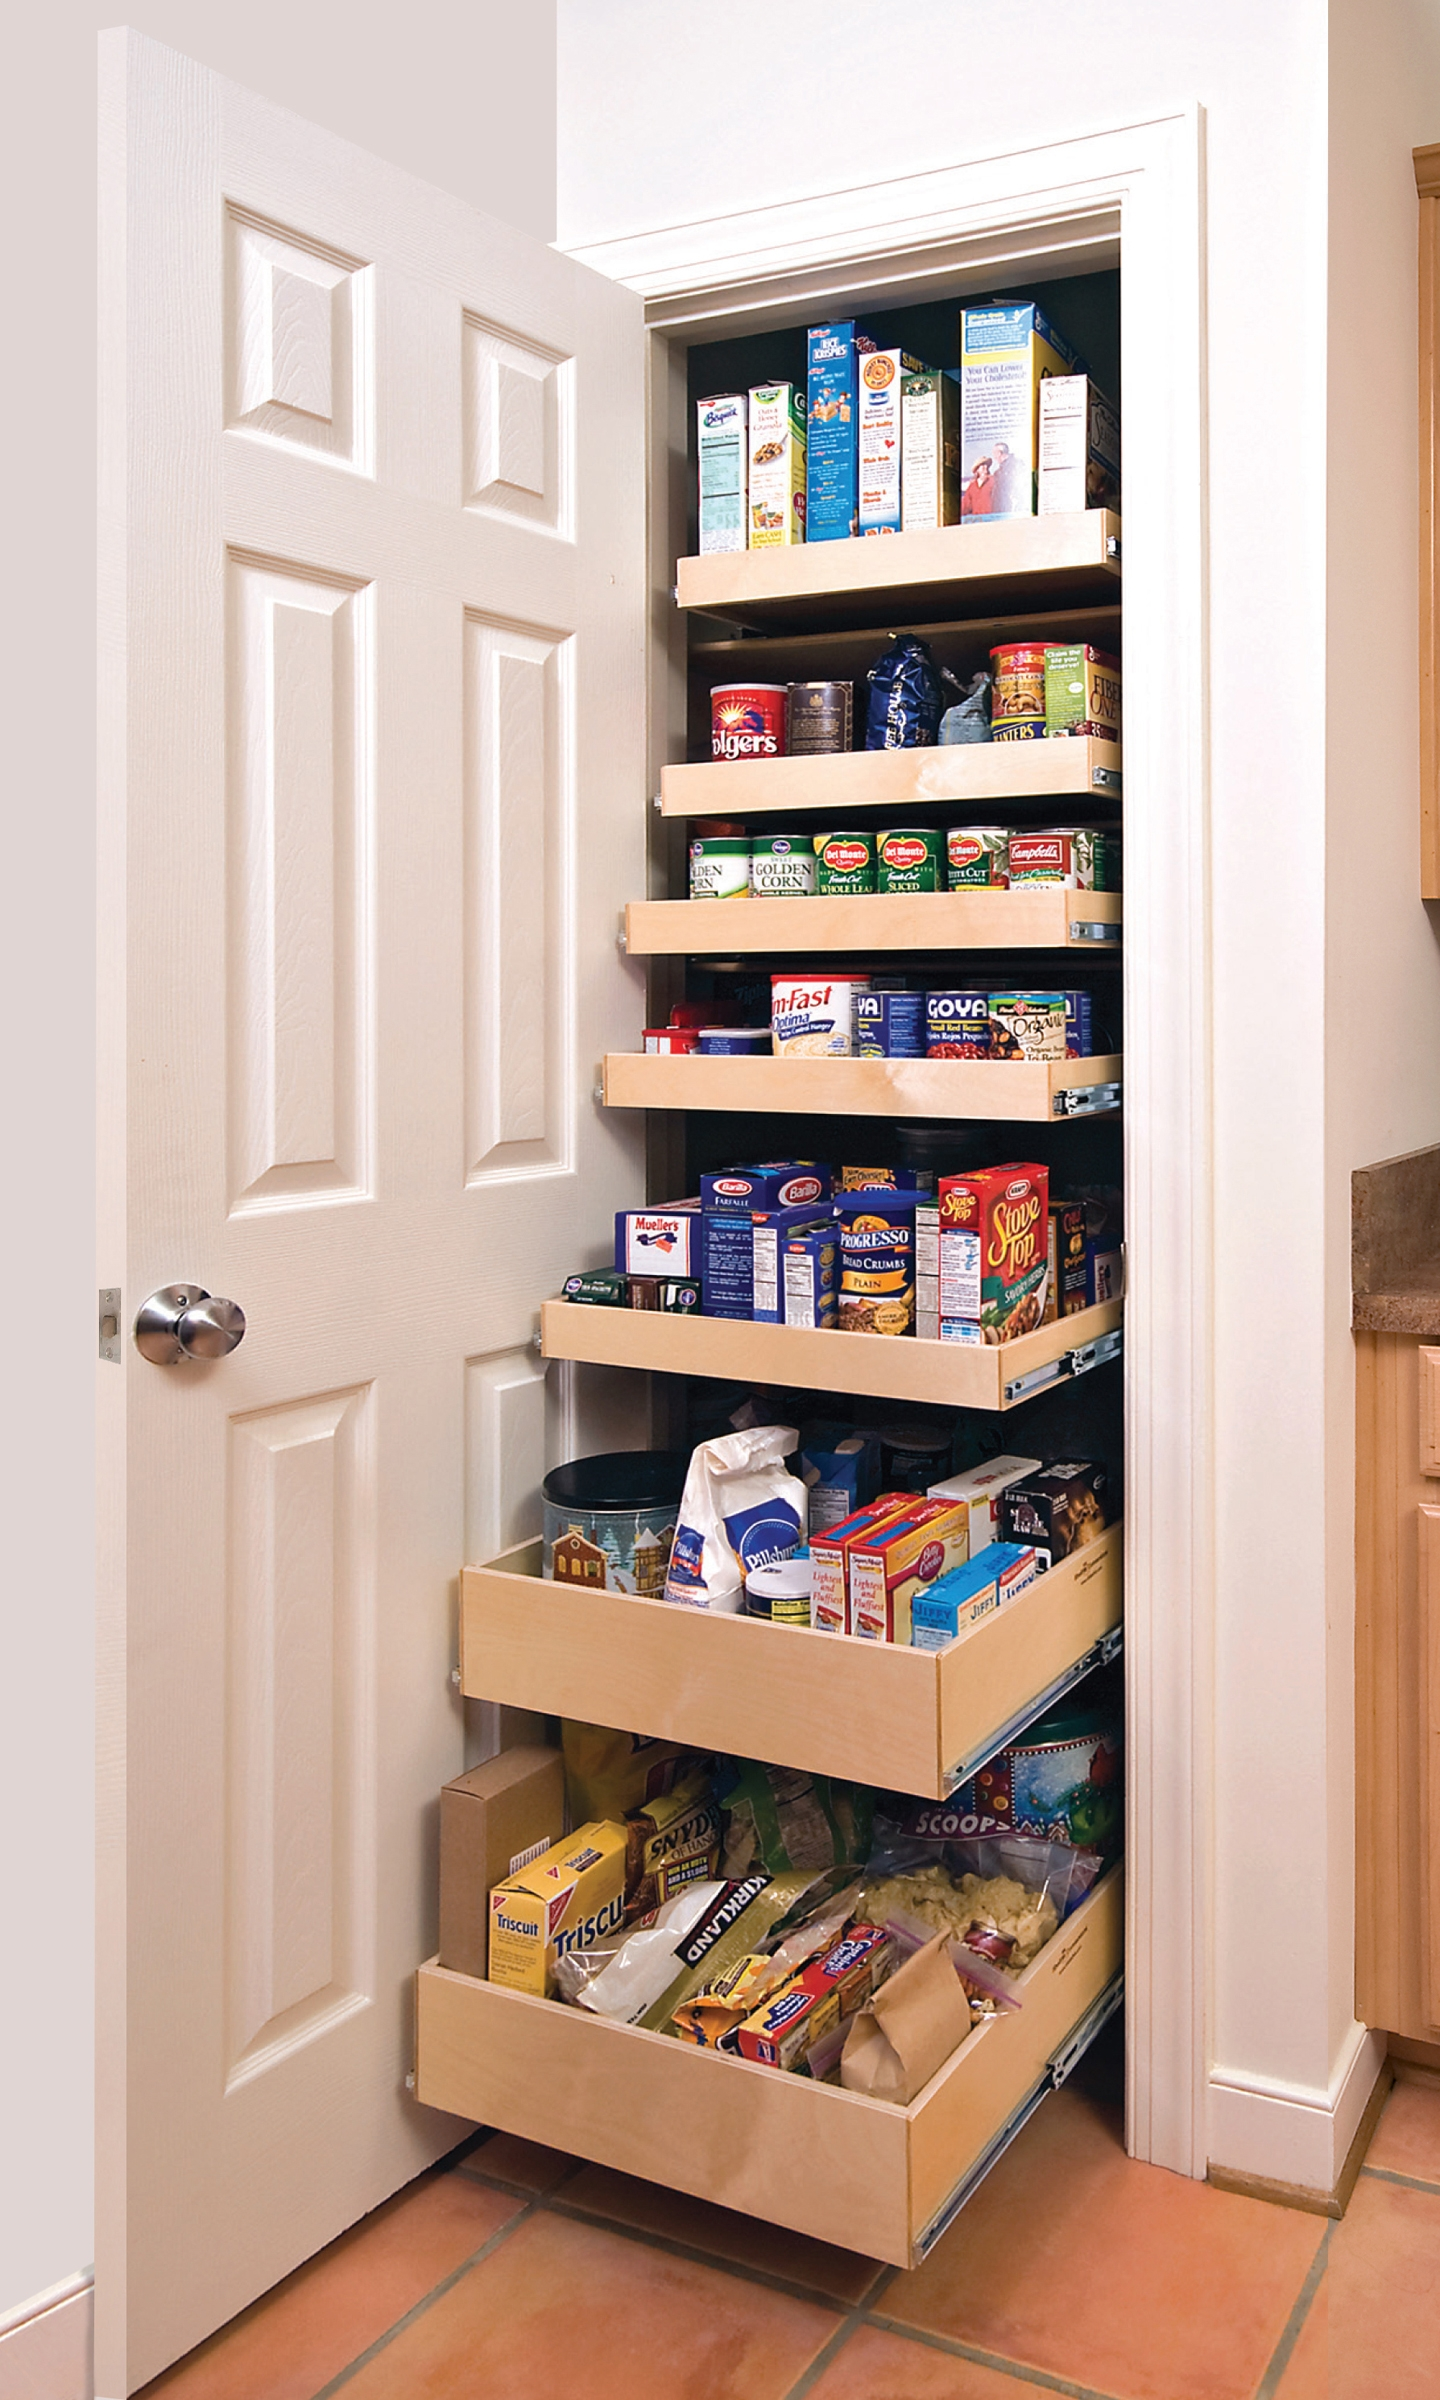 Sliding Spice Racks For Kitchen Cabinets As Seen On Tv